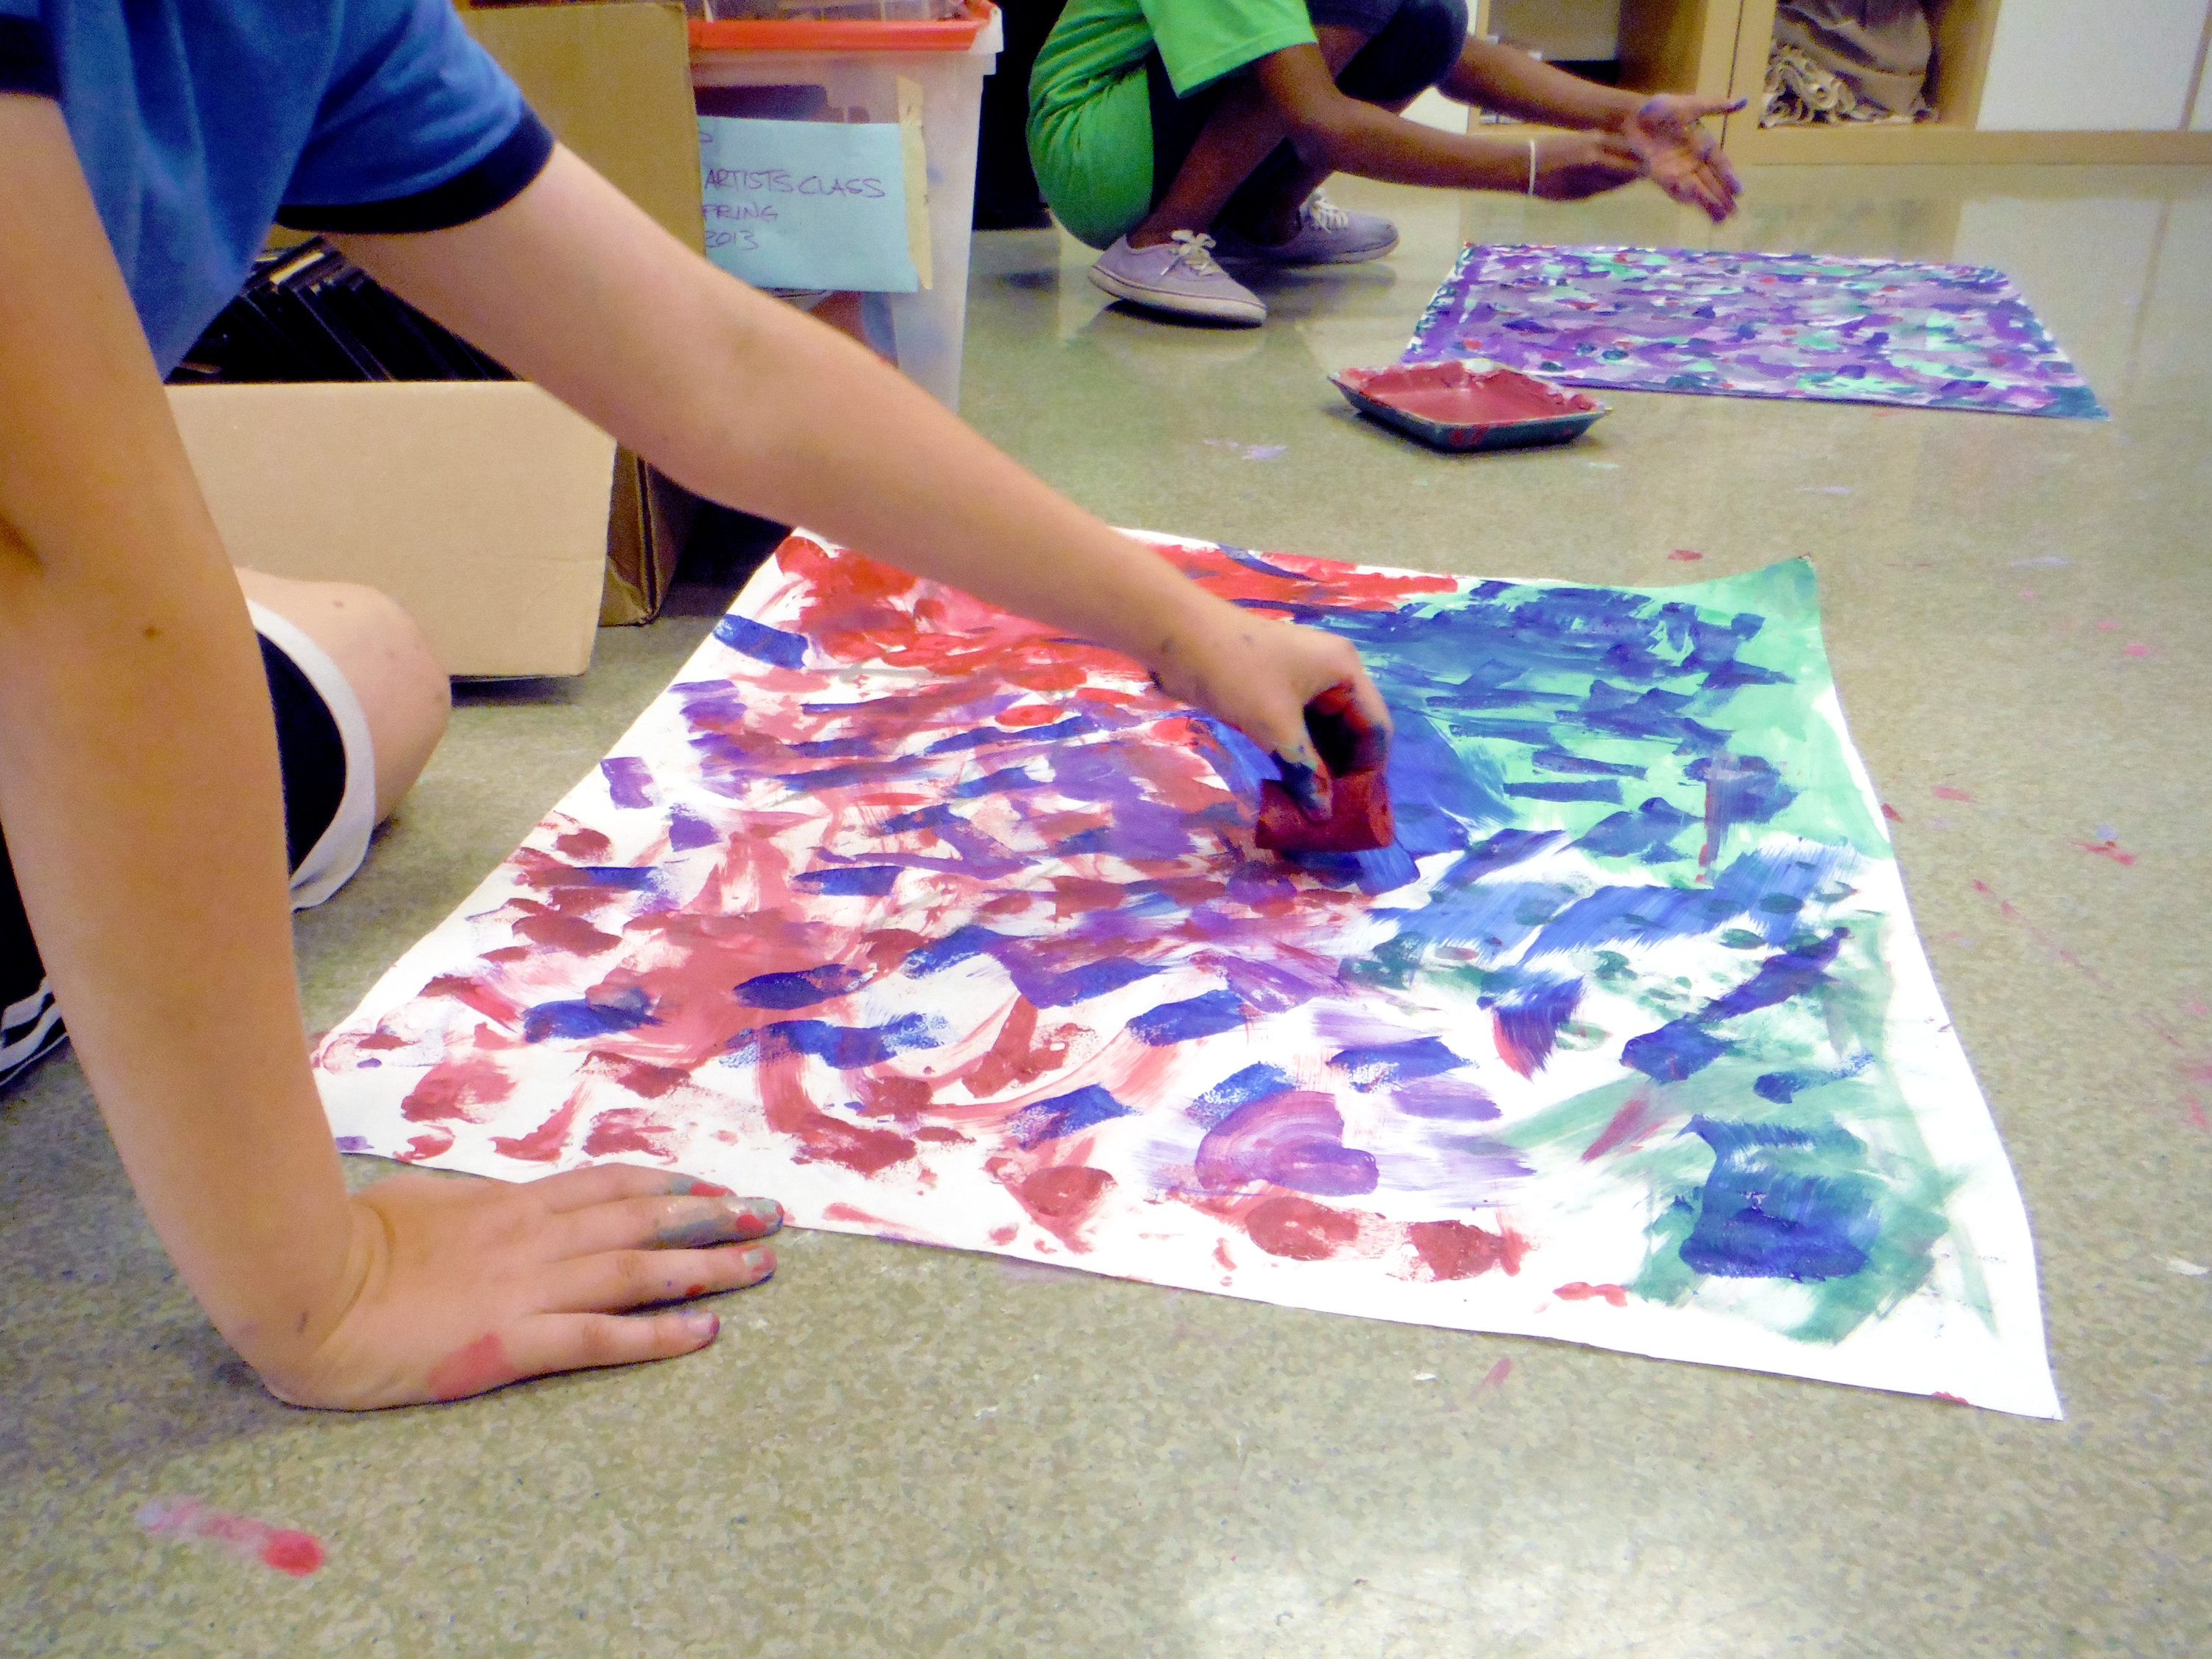 Children painting in youth summer art camp